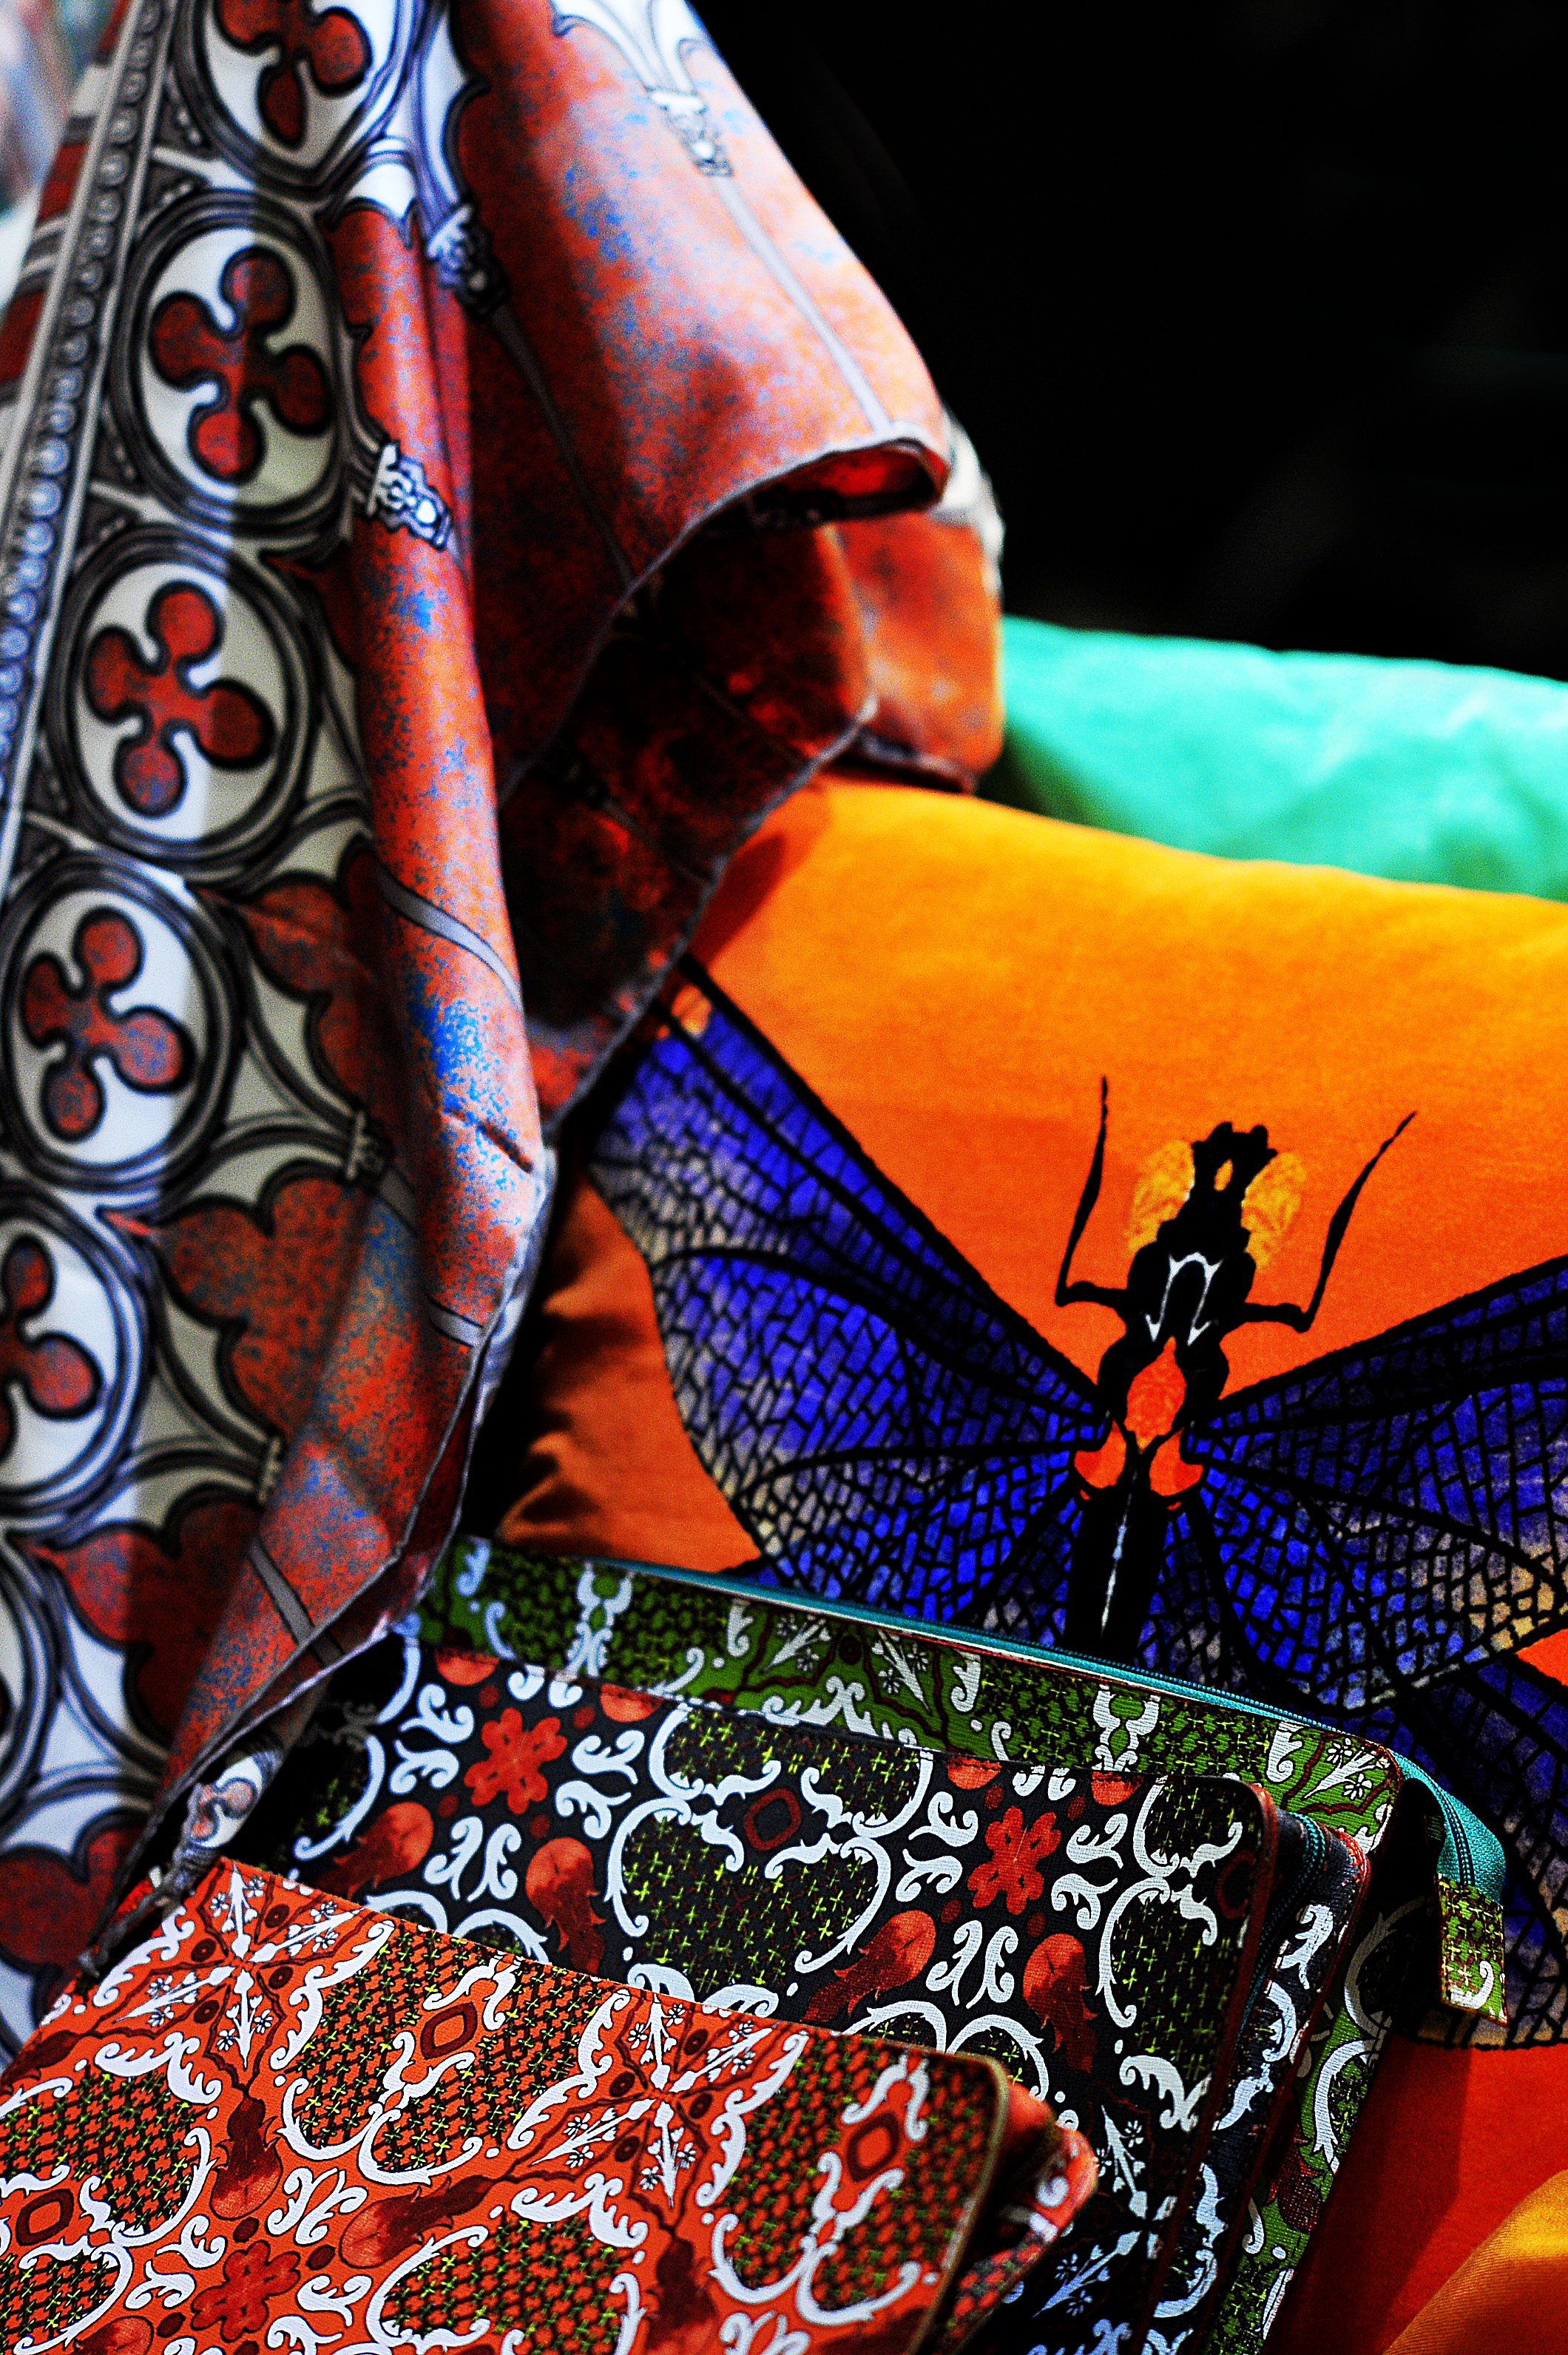 Kinloch scarves made with Como silk and prints painted by designer Marco Kinloch Herbertson <br /> Photo by Silio Danti